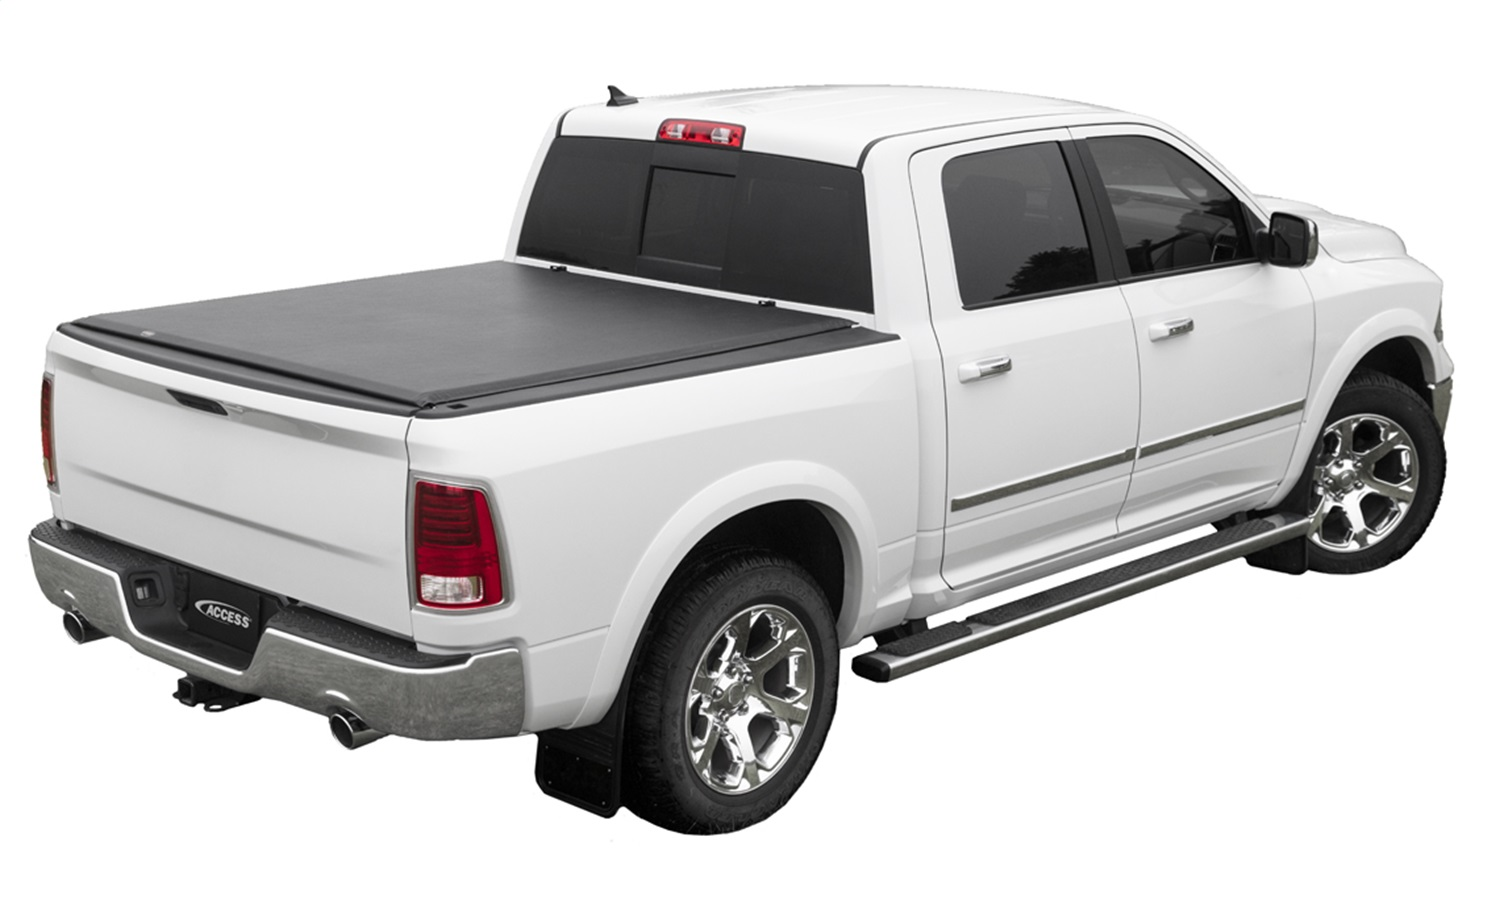 Access Cover 44169 ACCESS LORADO Roll-Up Cover Fits 1500 1500 Classic Ram 1500